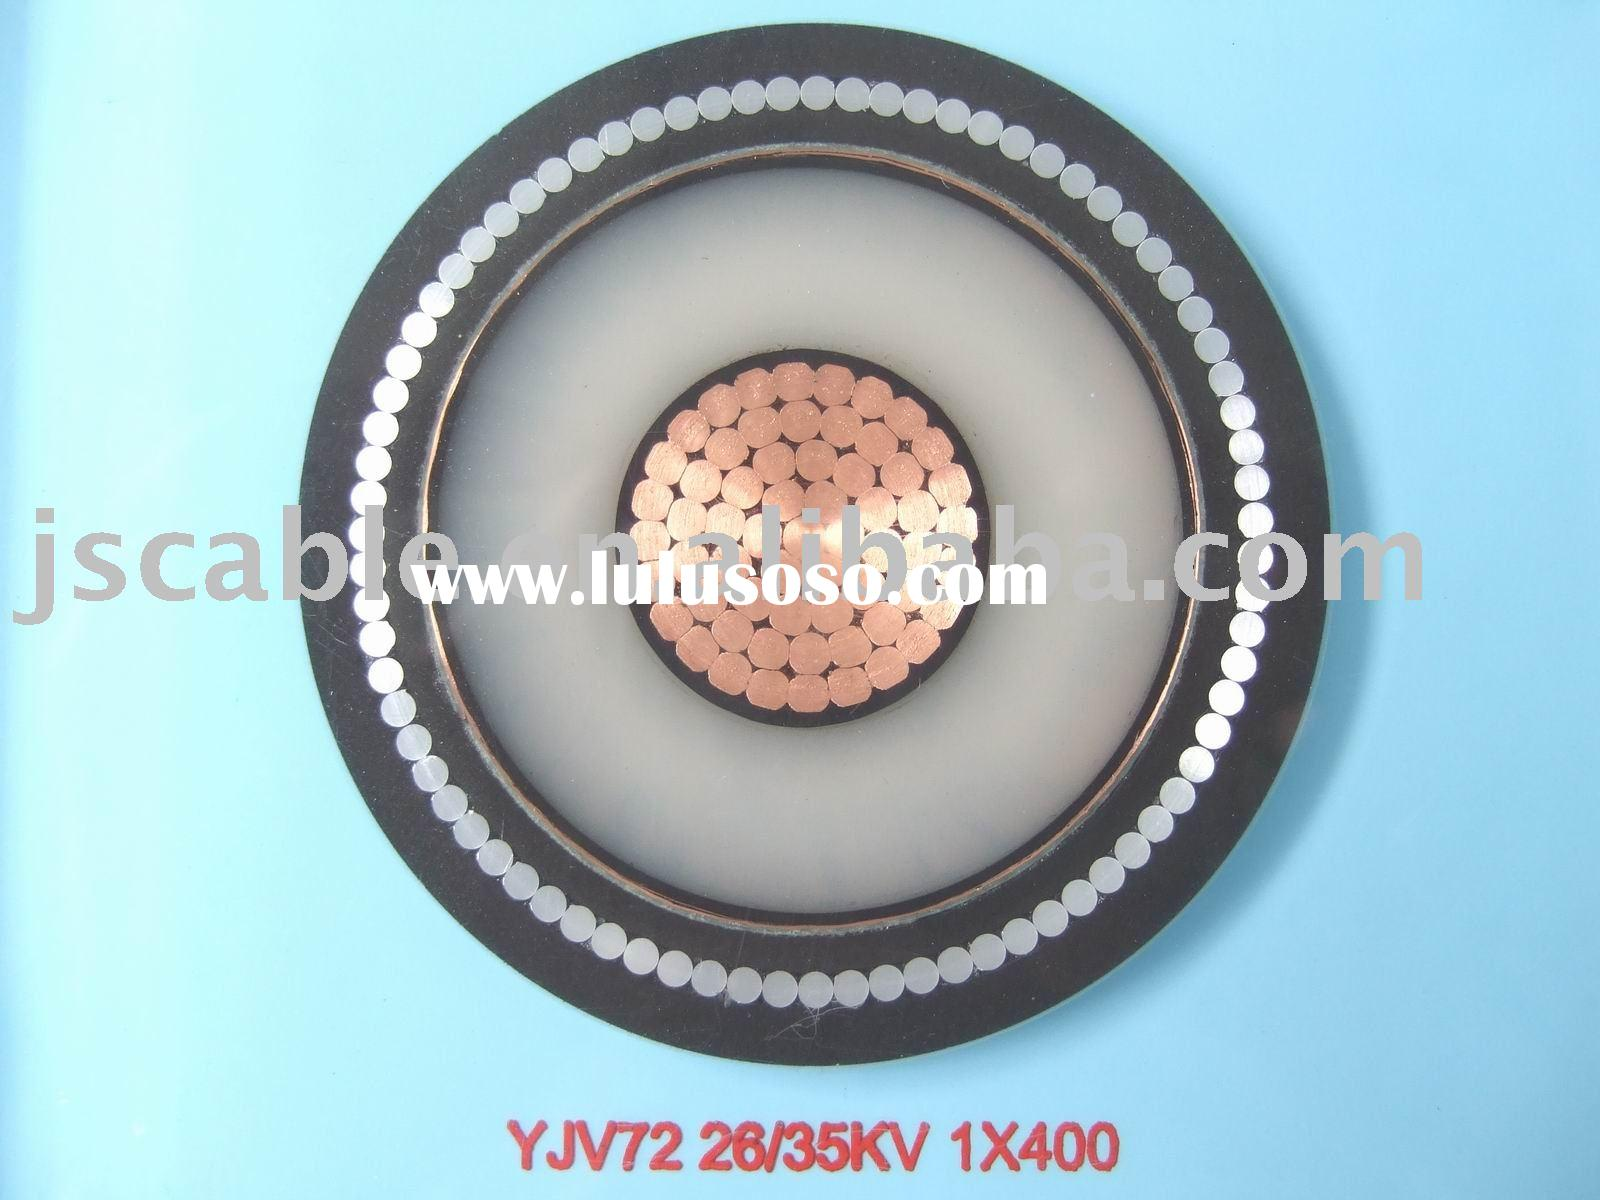 Hv Xlpe Cable : Red power cable manufacturers in lulusoso